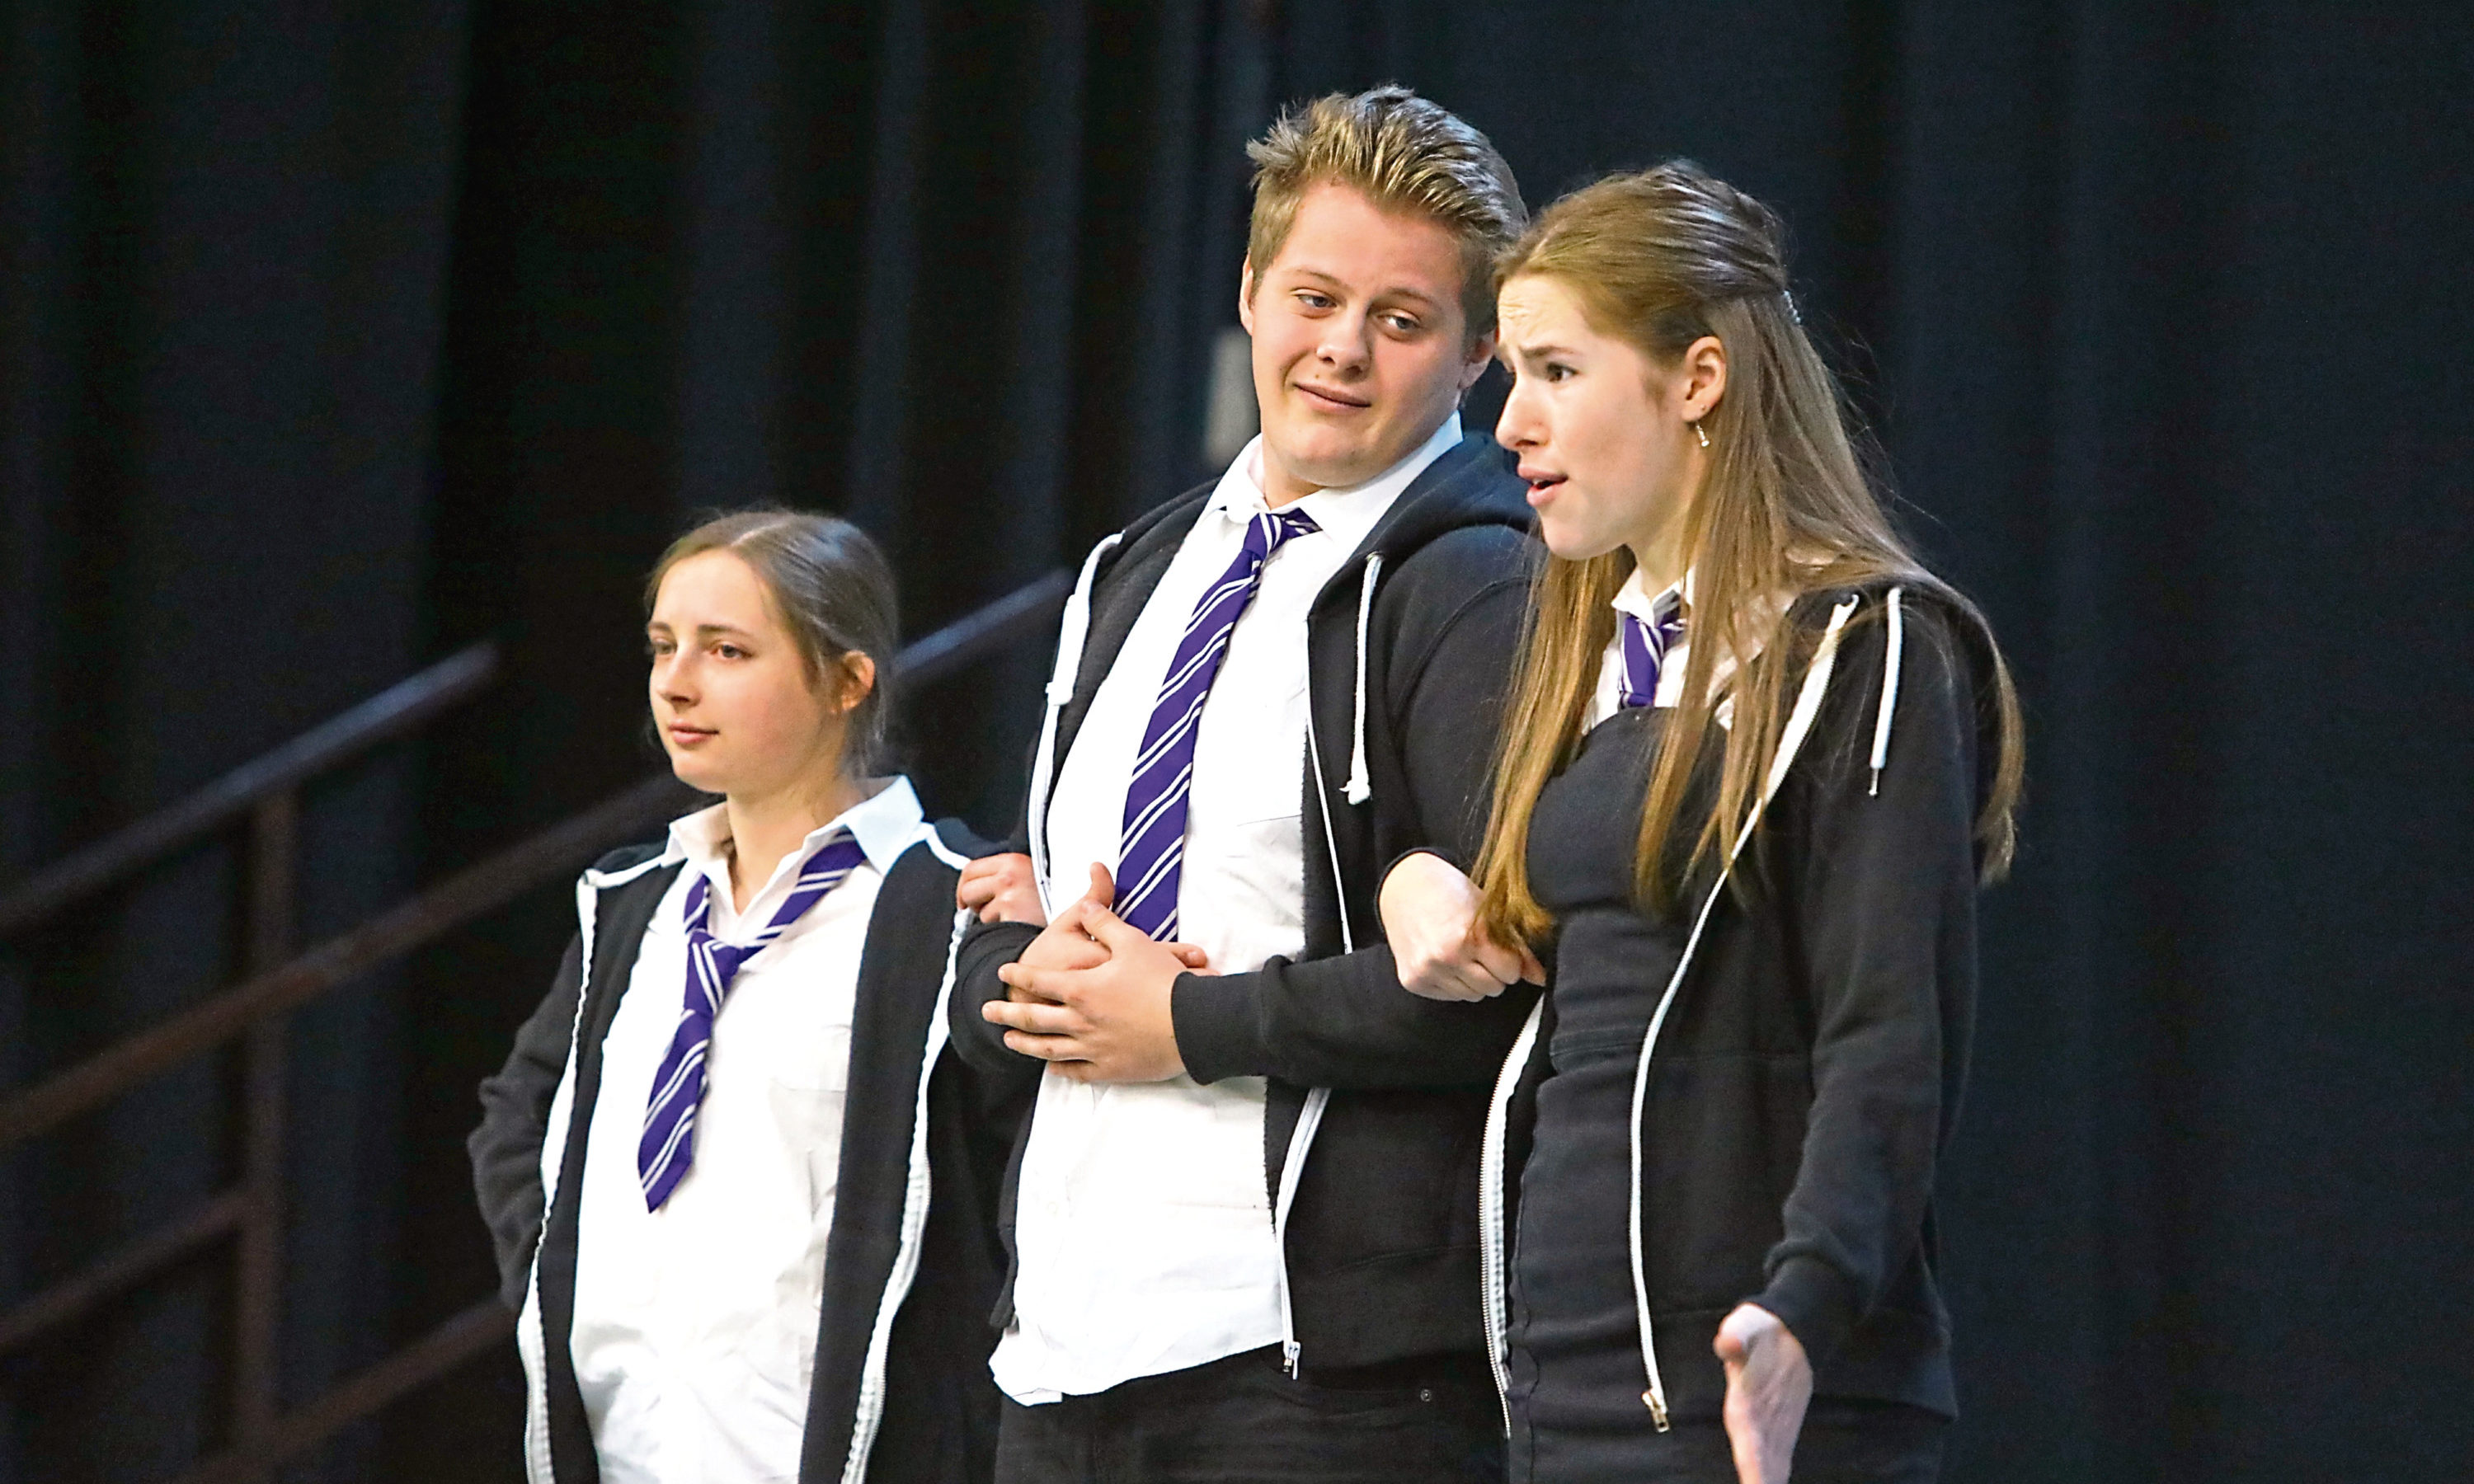 Tthe members of the Fast Forward drama group, during their performance of 'No Knives, Better Lives' at St. John's RC High School in Dundee.